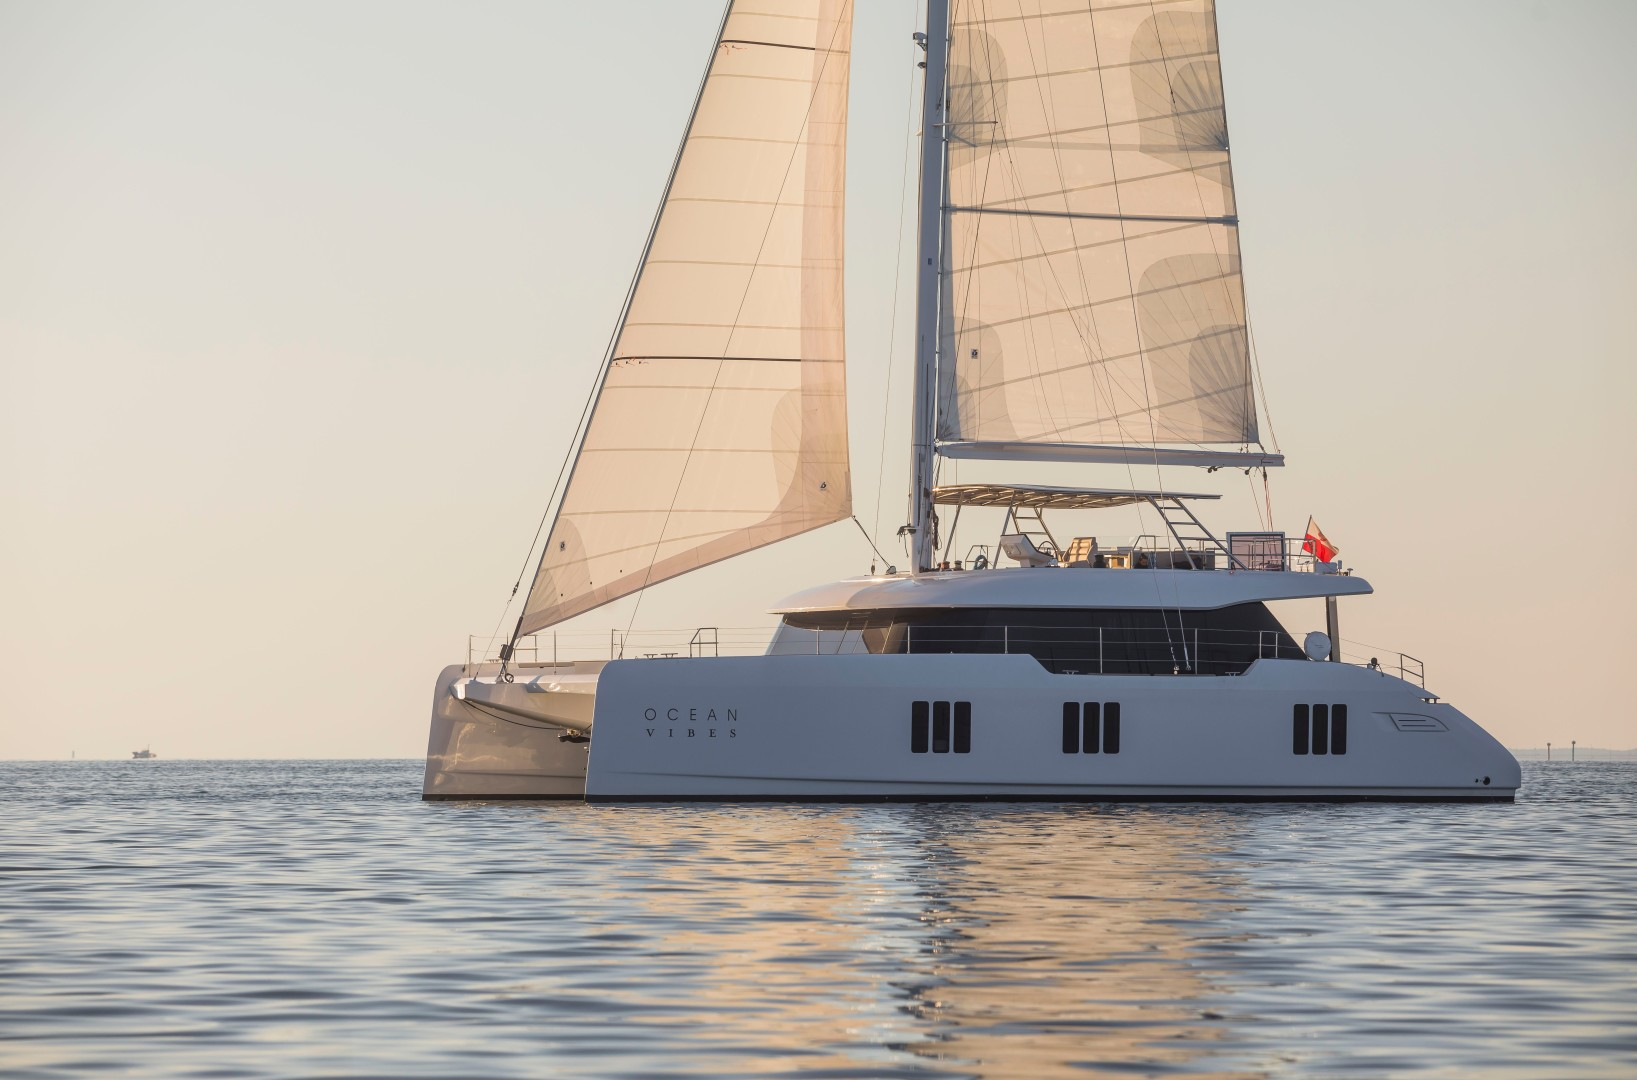 74' Sunreef 2020 Sunreef 70 OCEAN VIBES